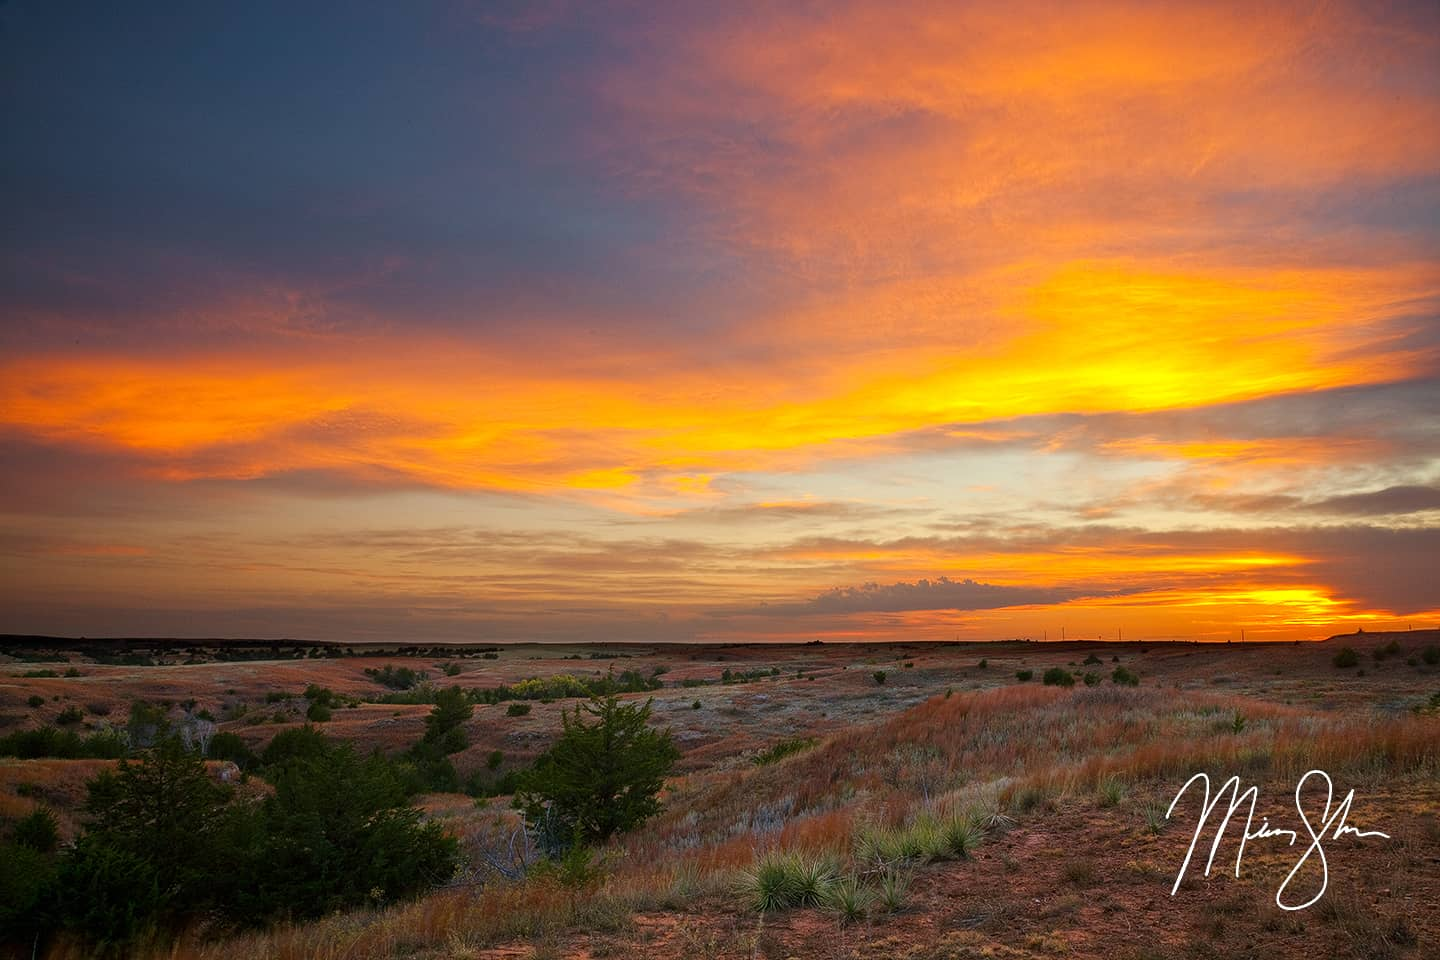 Open edition fine art print of Gypsum Hills Sunset from Mickey Shannon Photography. Location: Gypsum Hills, Kansas